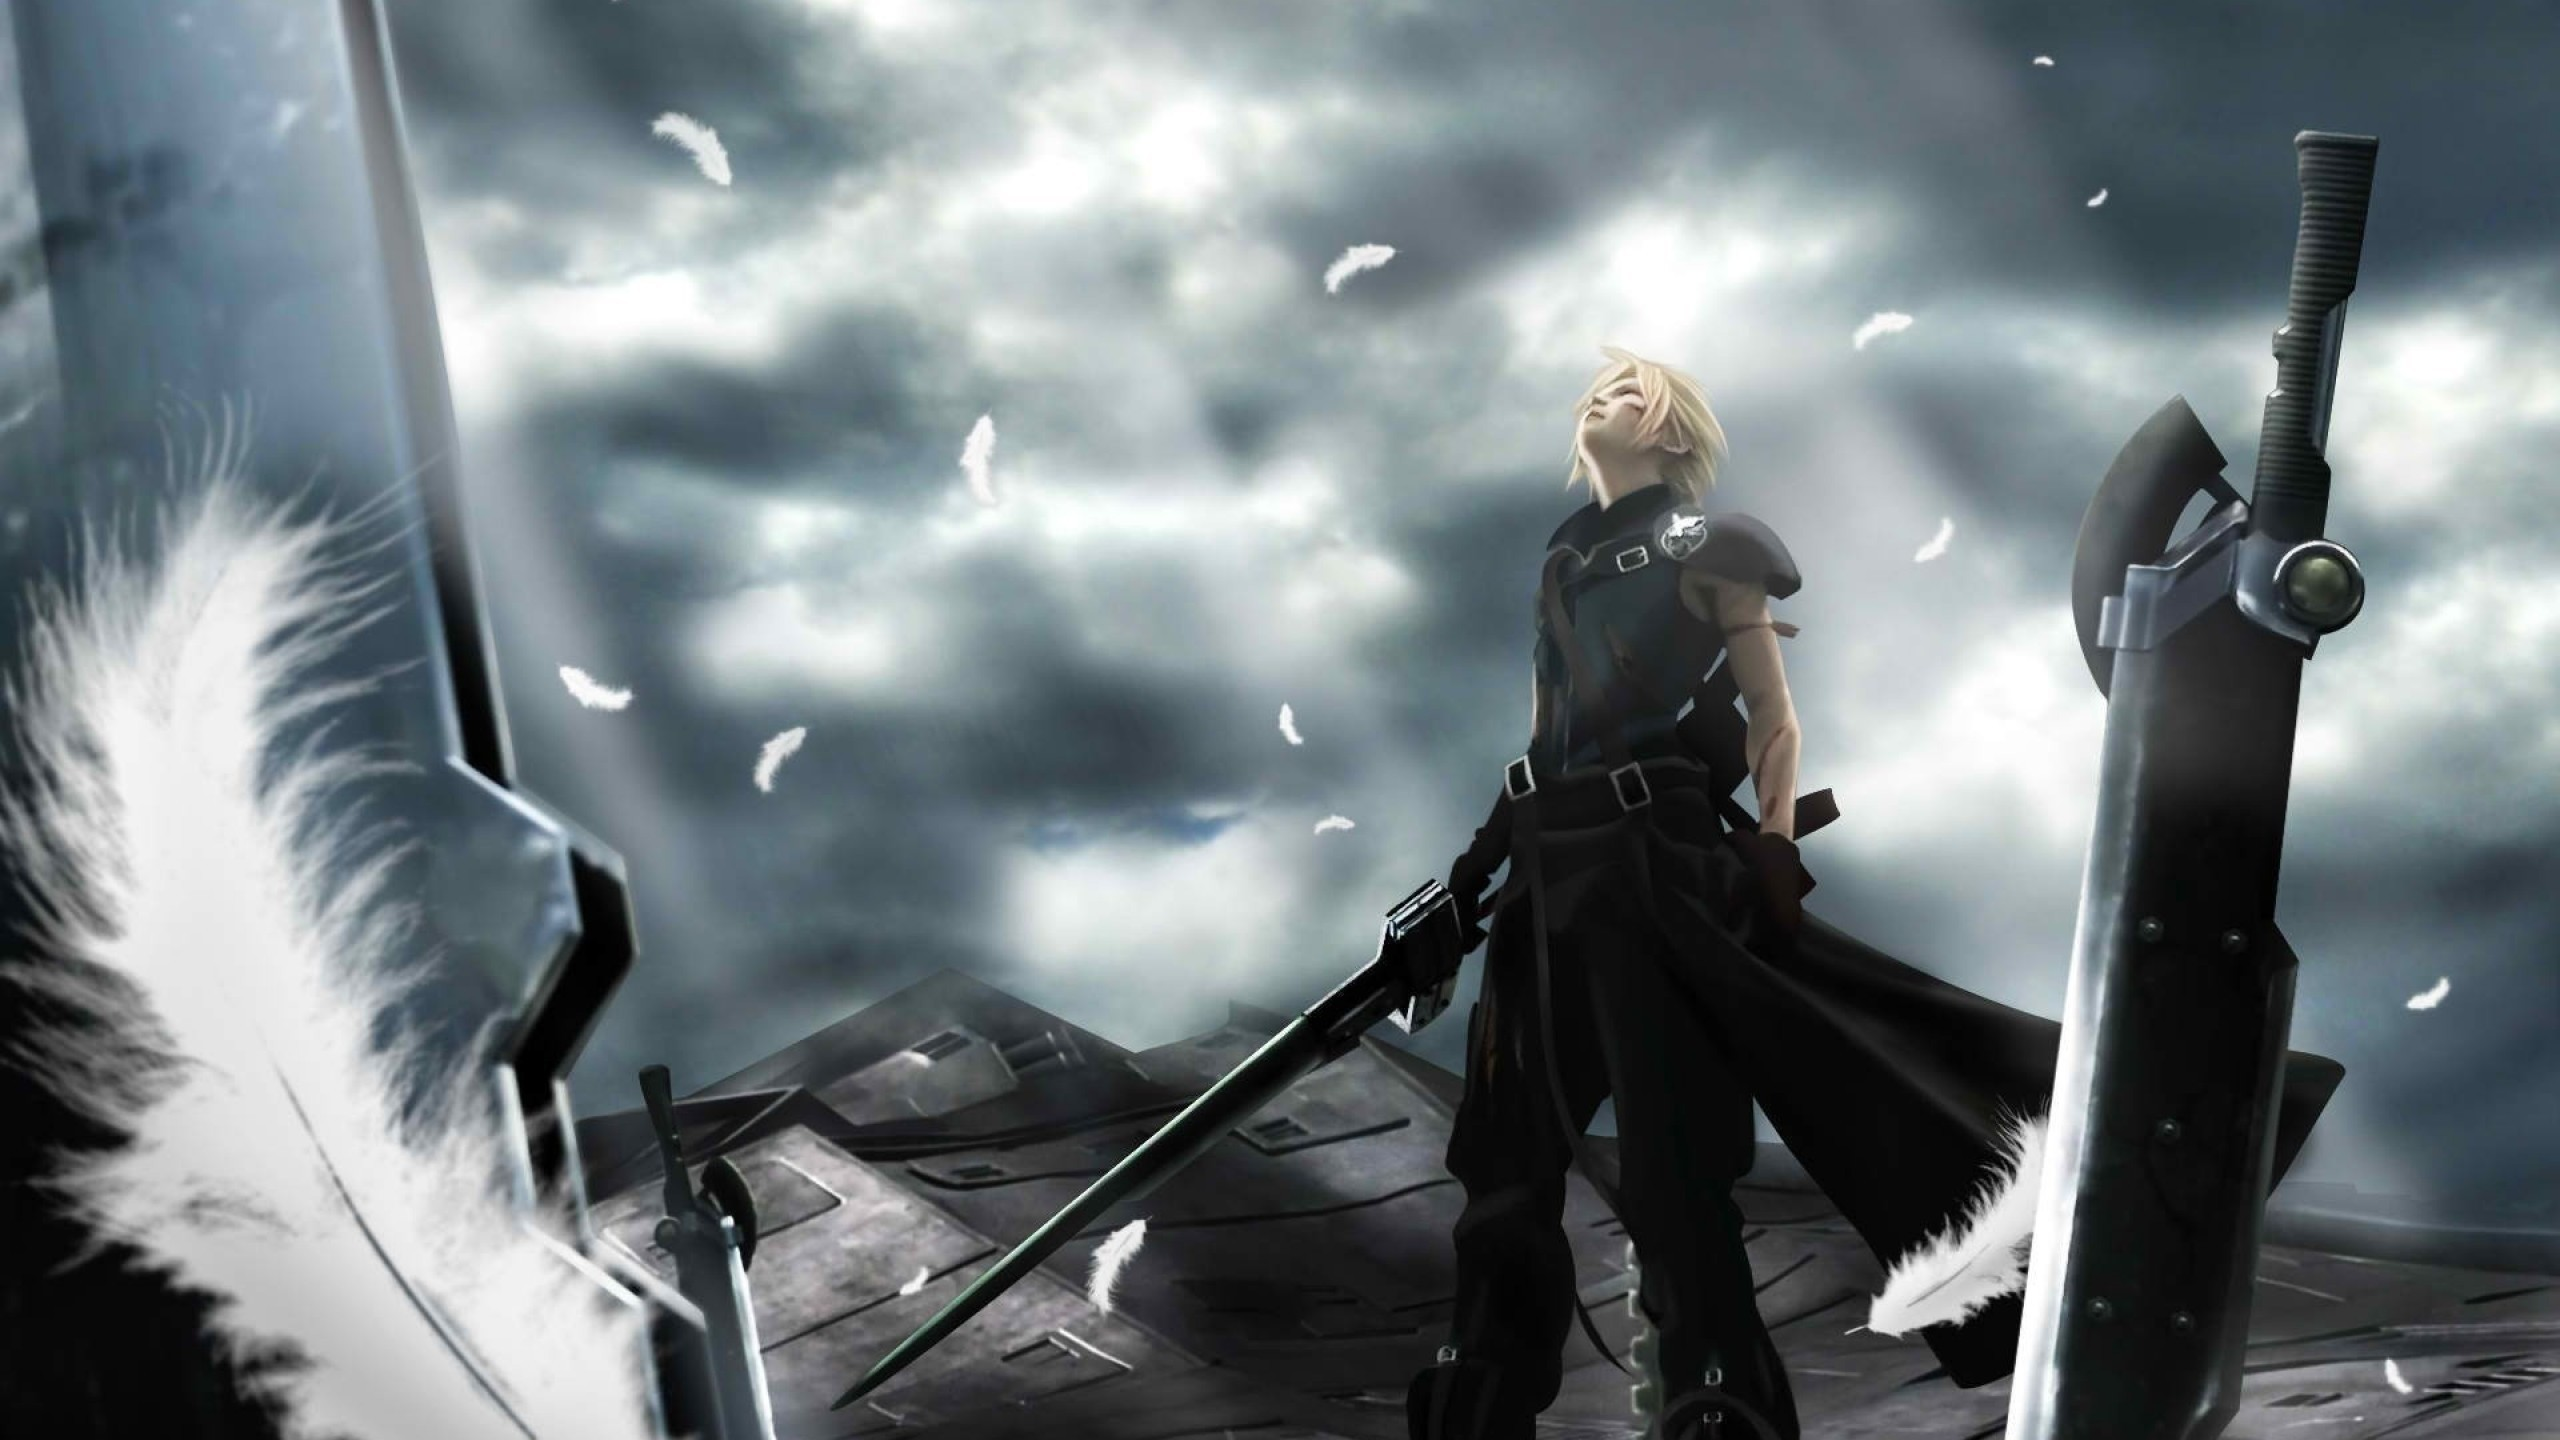 2560x1440 1920x1080 final-fantasy-7-sephiroth-wallpaper-1920x1200-samsung-WTG20027863  · downloado. Pages: 1 2 3